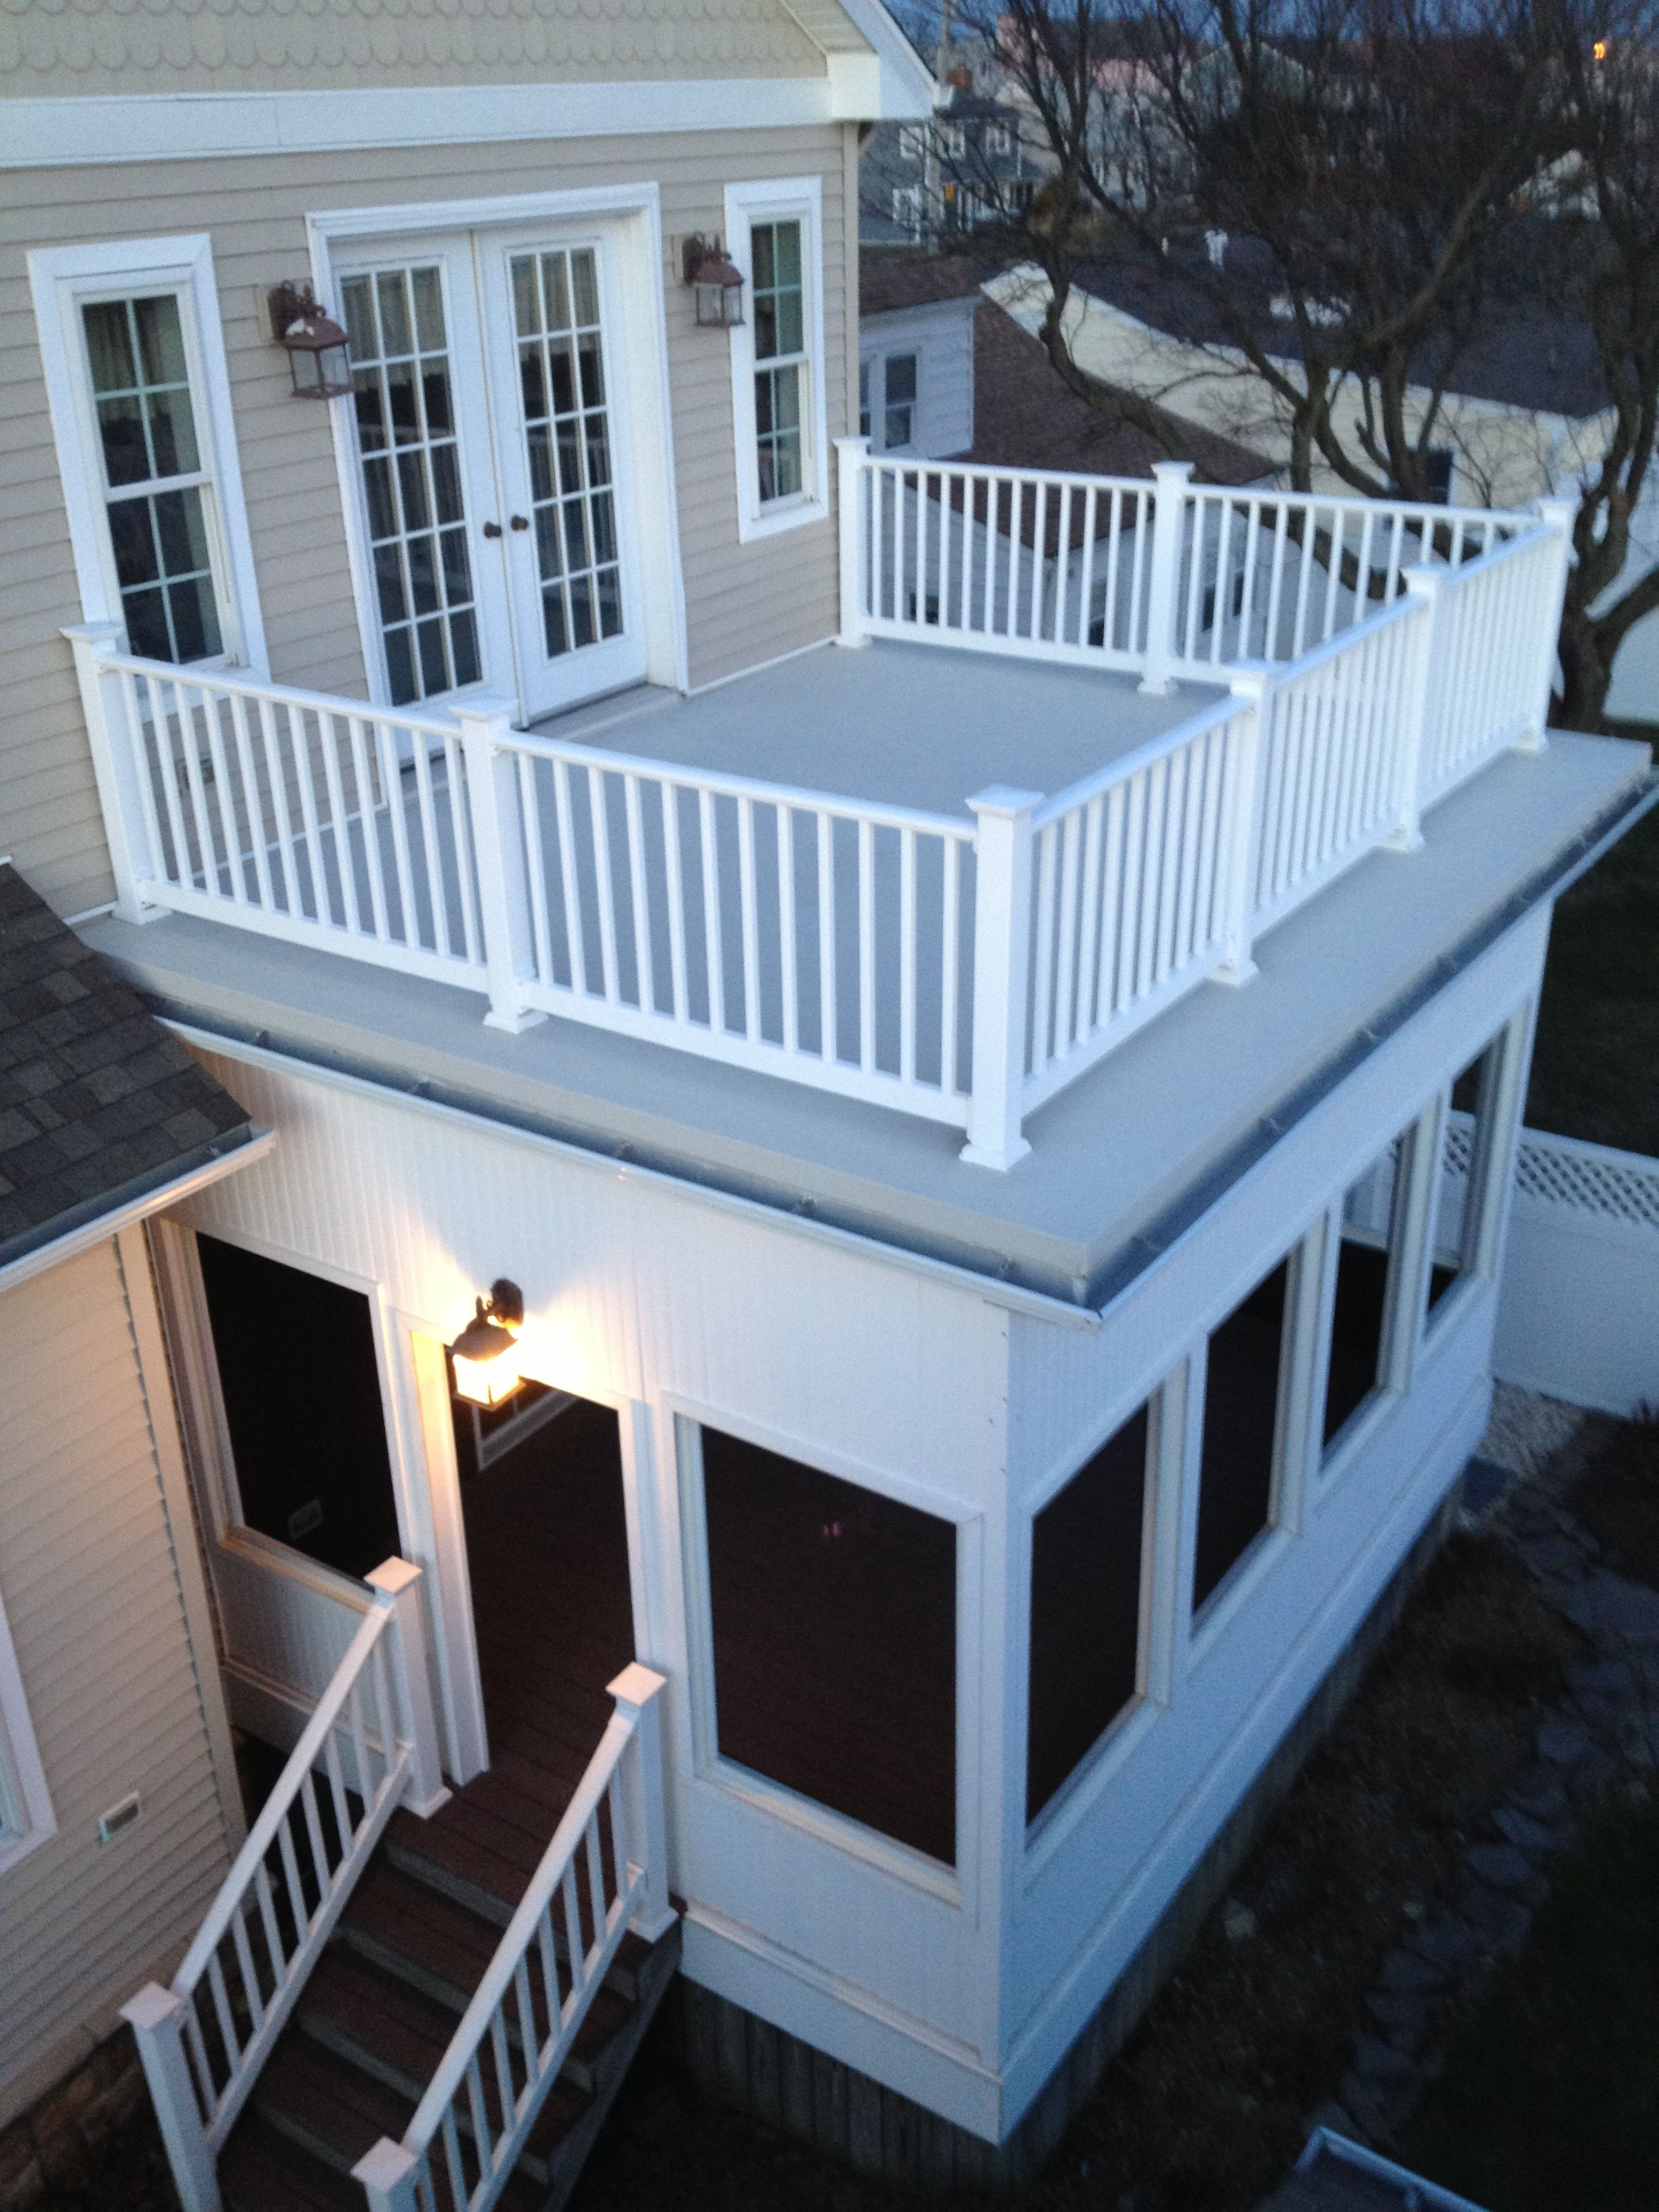 Flat Roof With Railings And A Screened In Porch. Wife Can